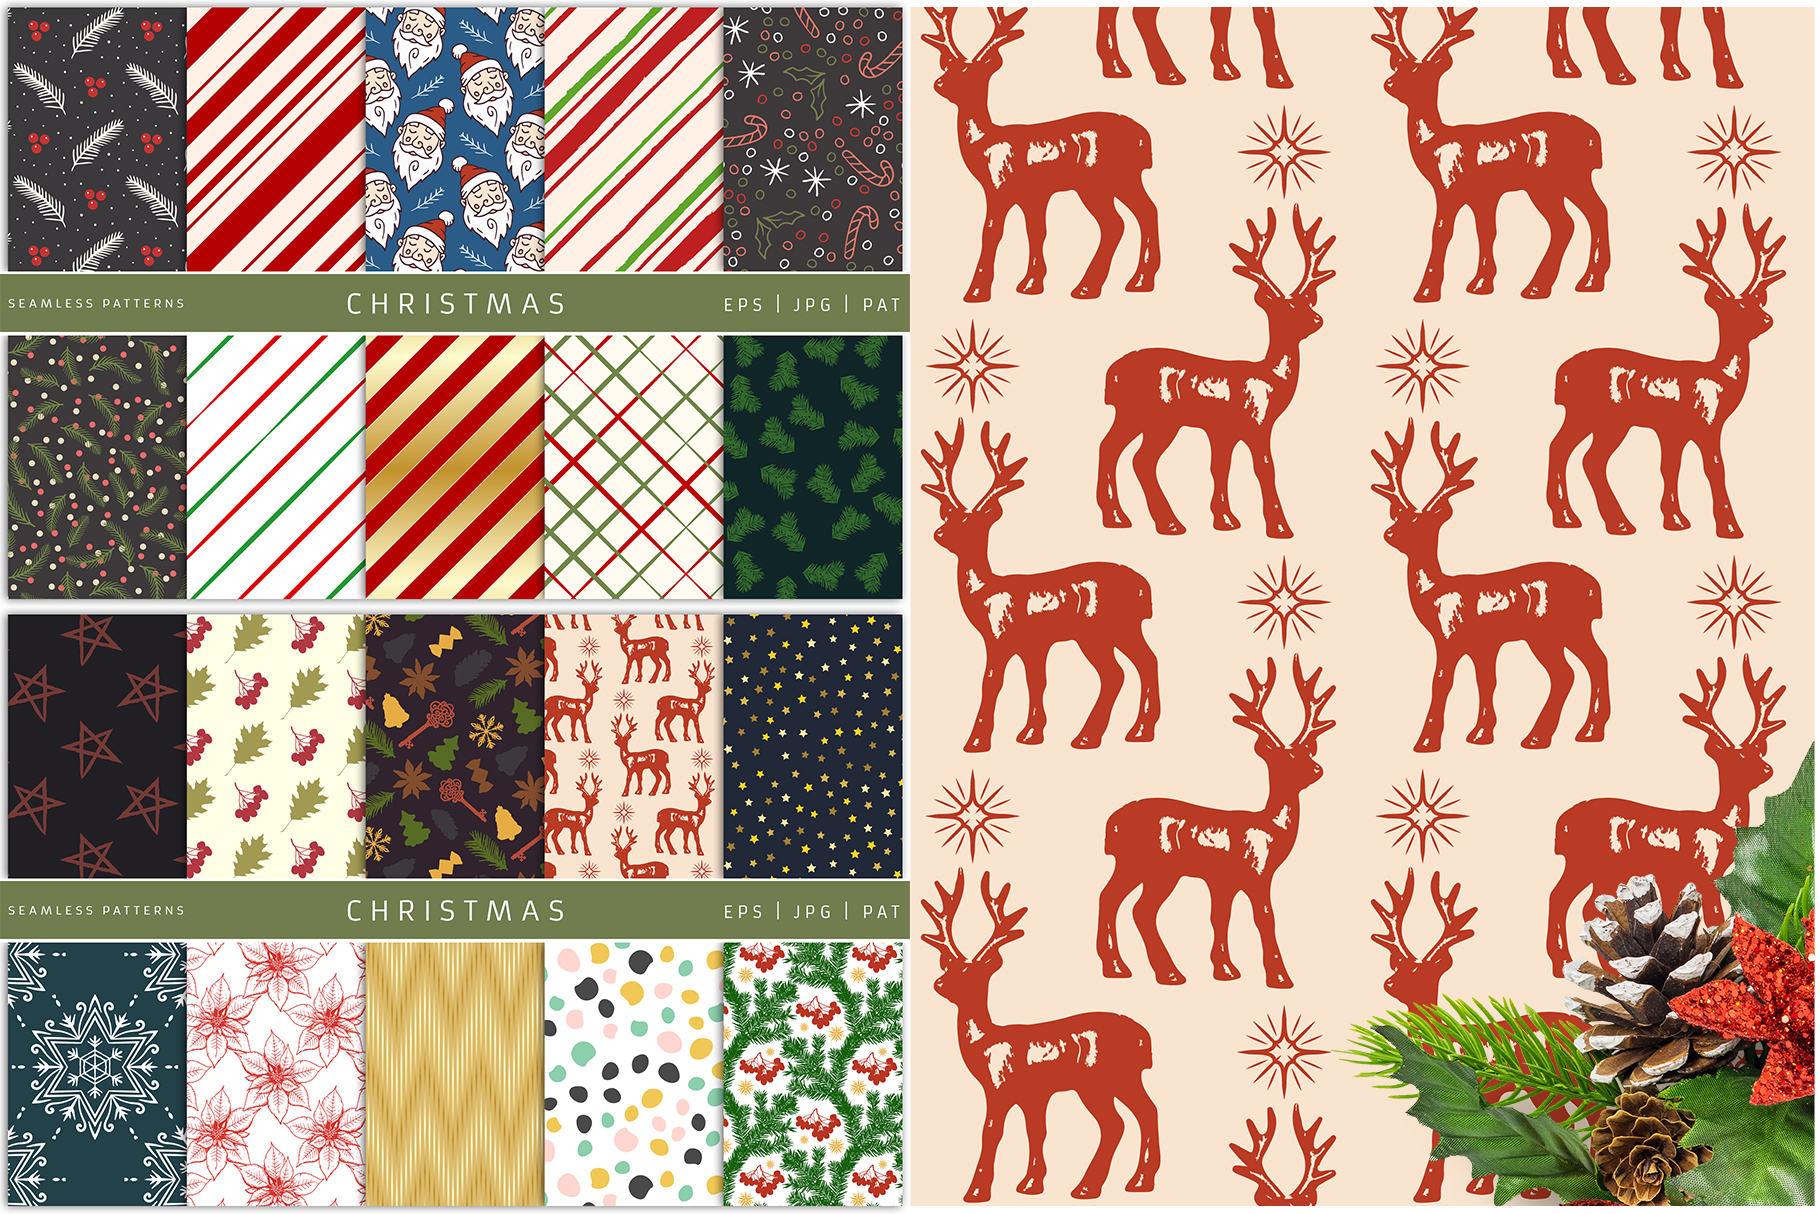 100 Seamless Patterns Vol.4 Christmas example image 10